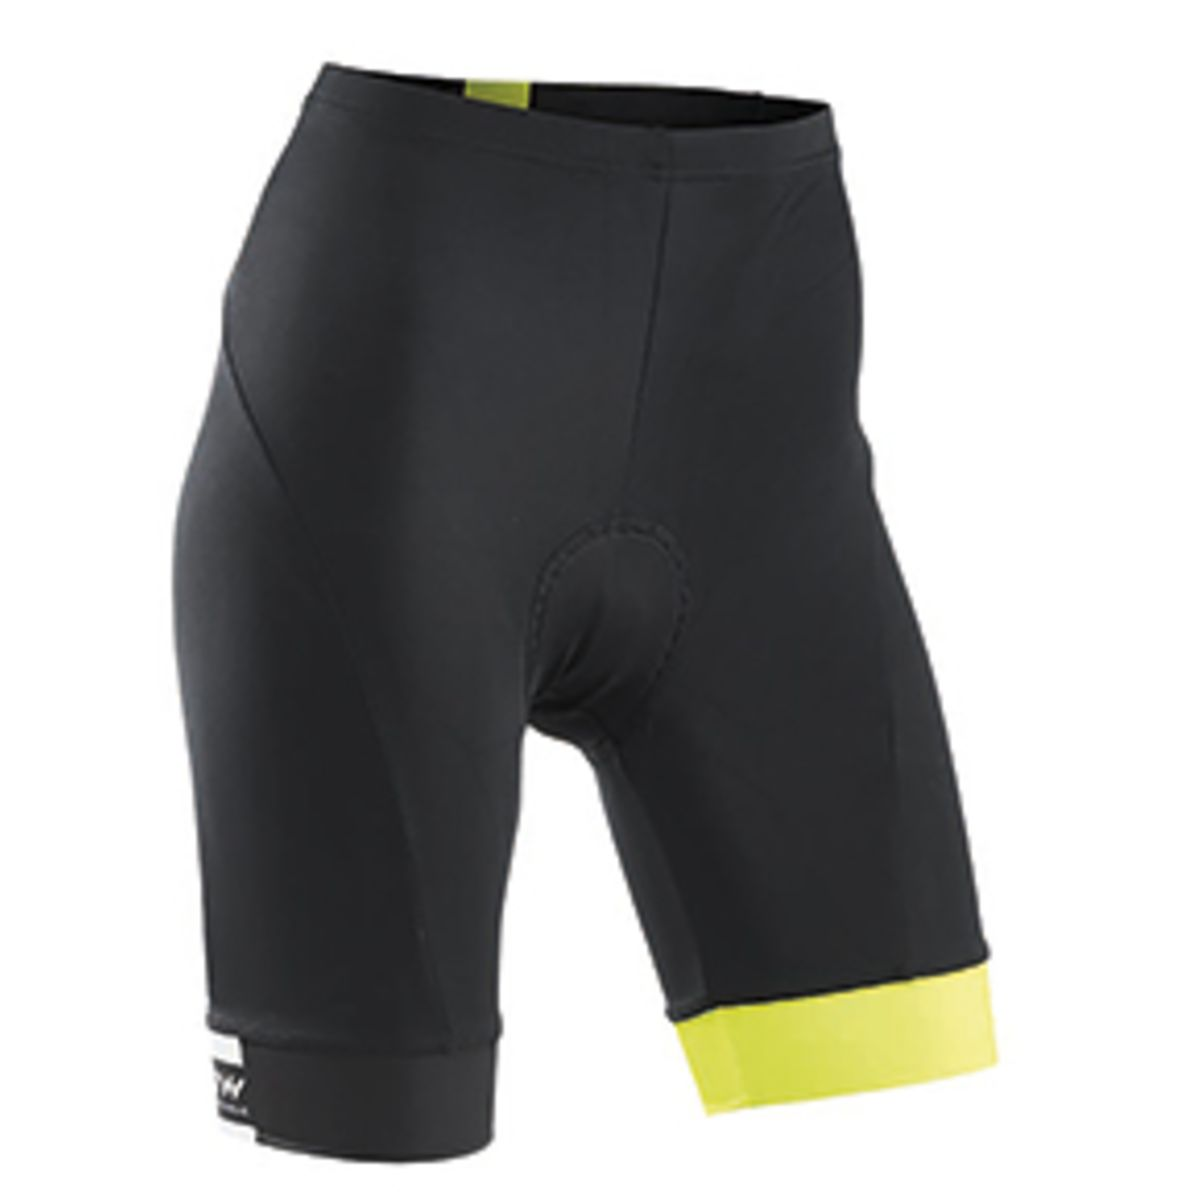 LOGO WOMAN 3 cycling shorts